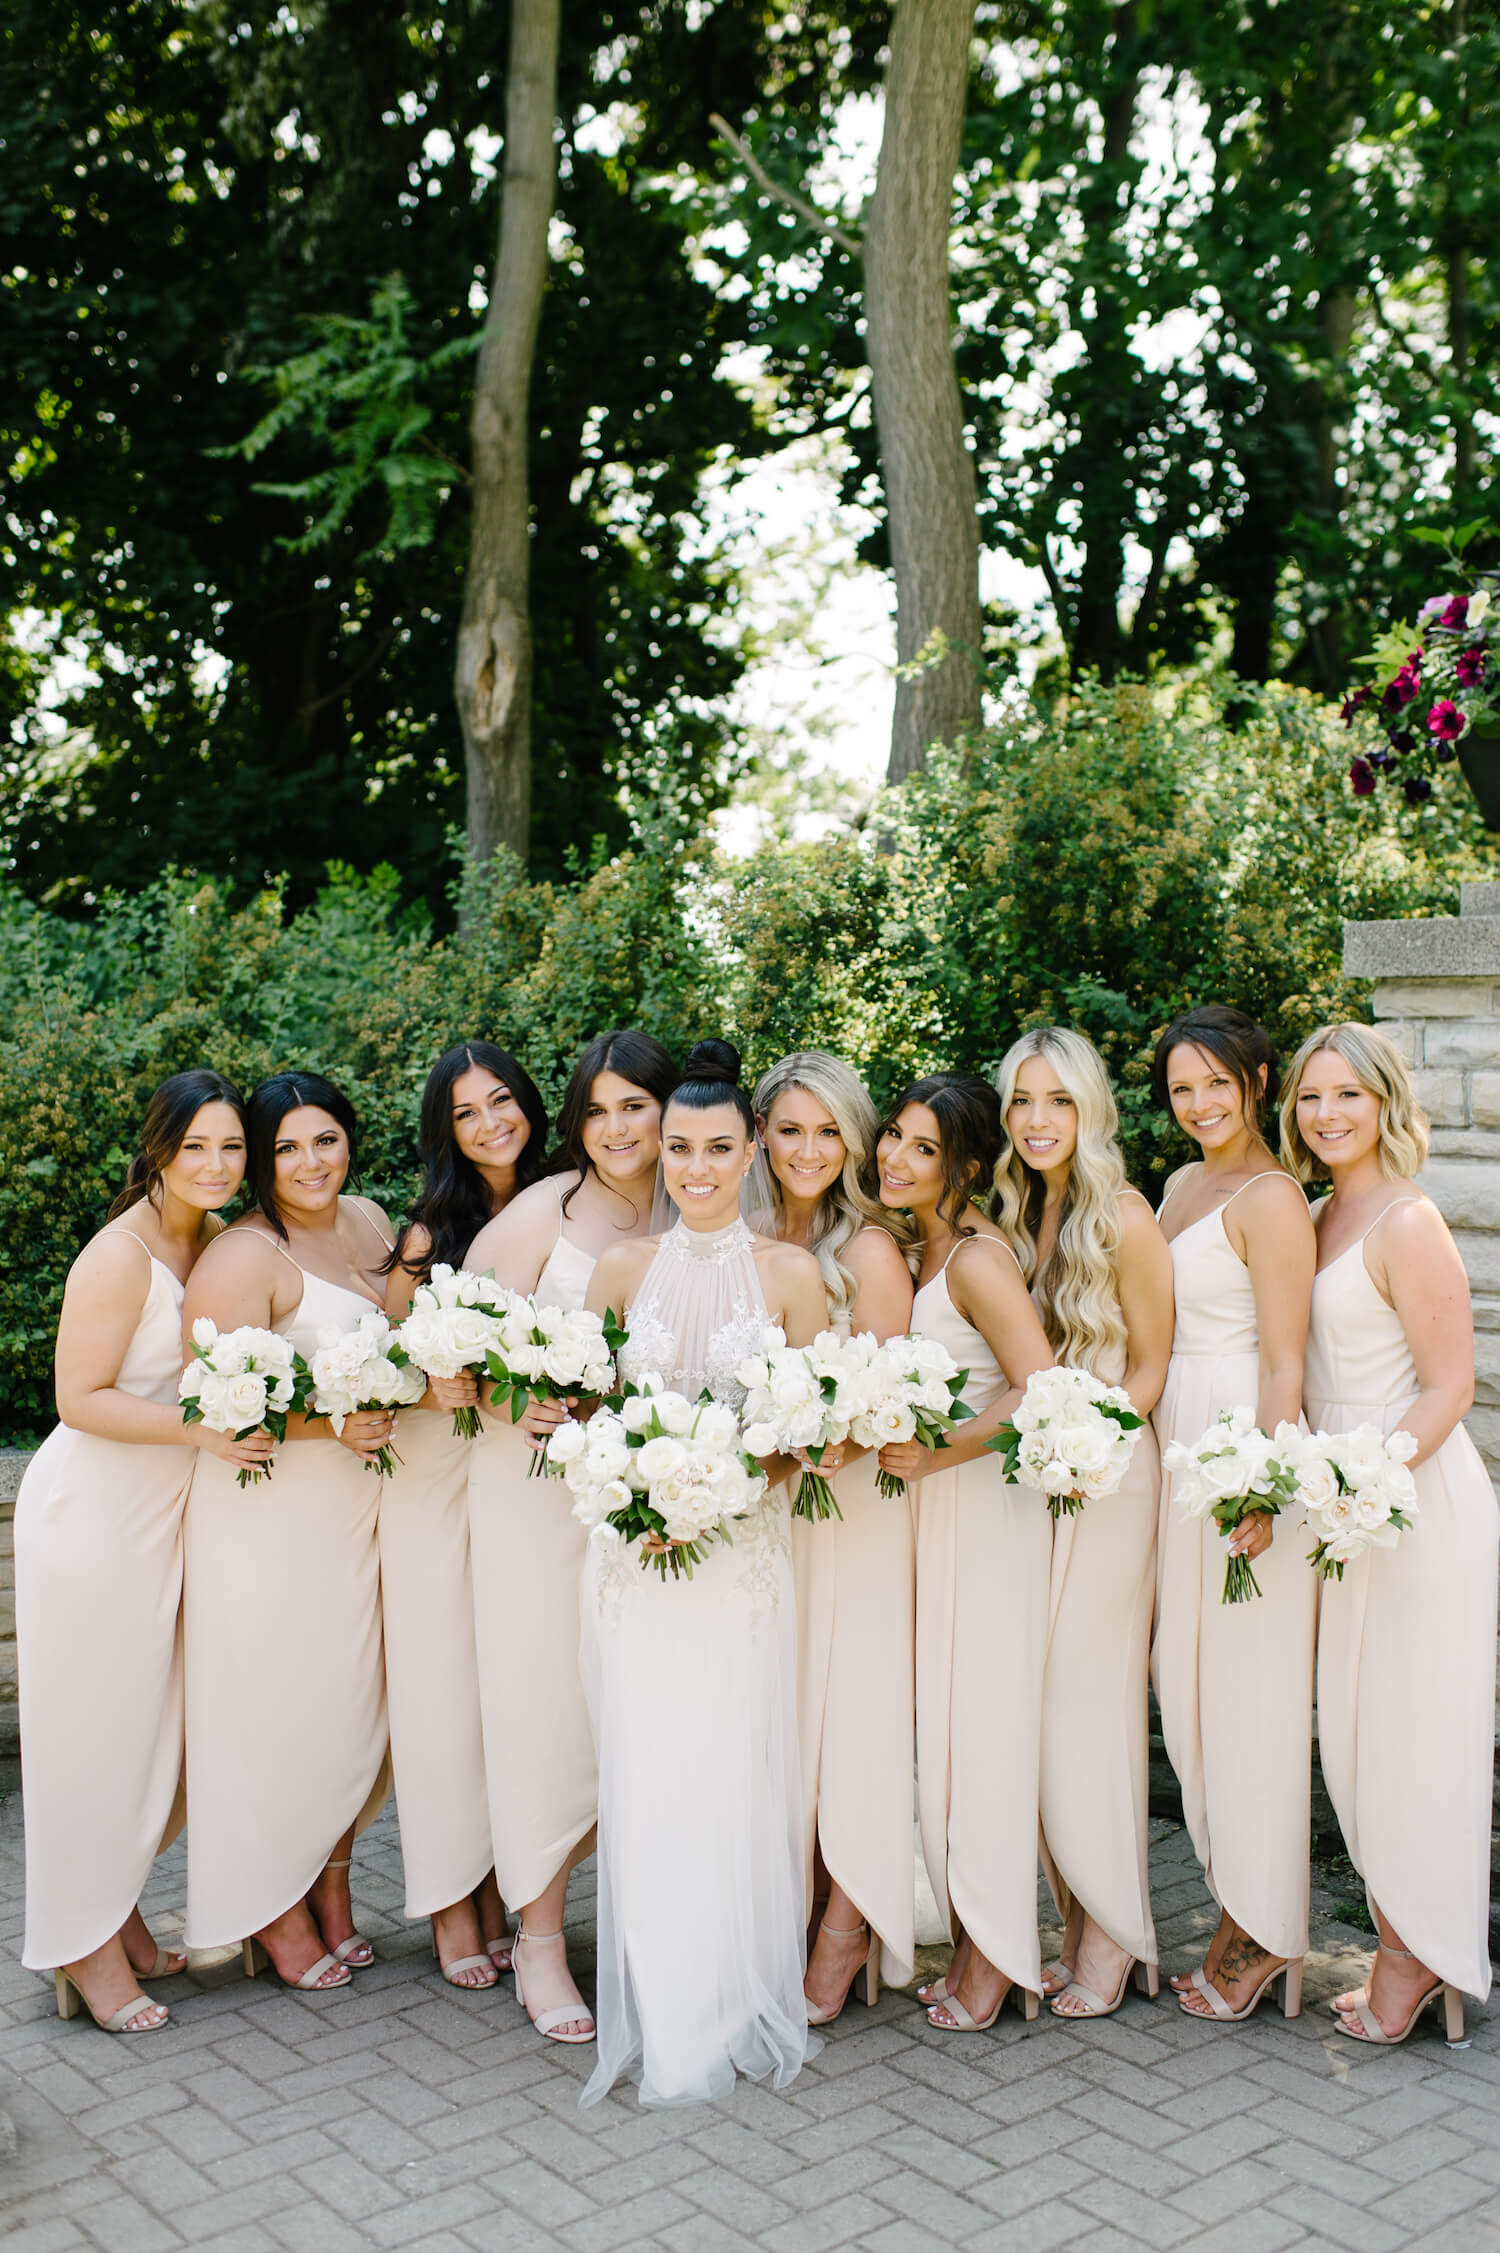 blush bridesmaids dresses 1